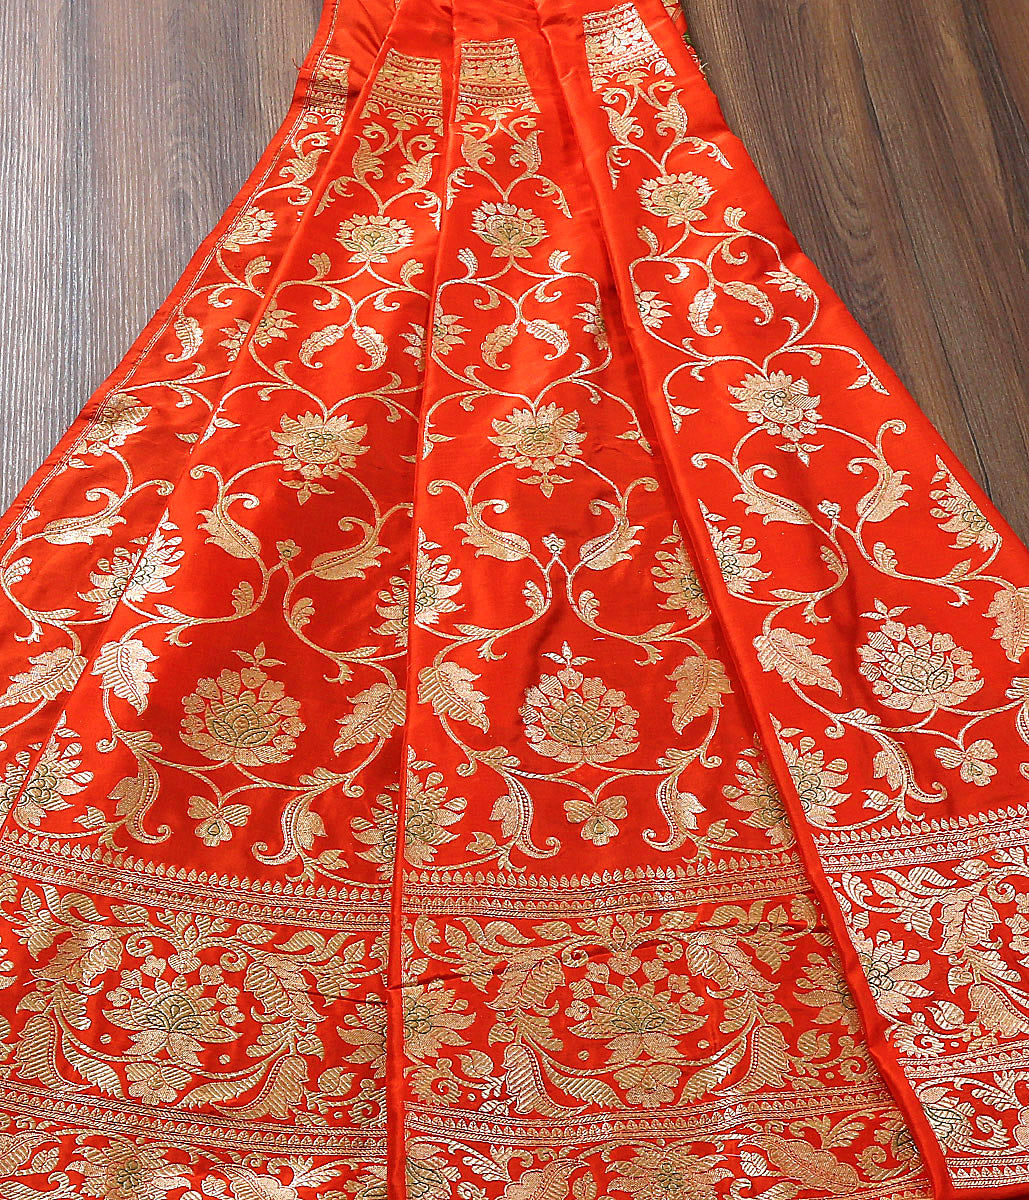 Handwoven Banarasi Tomato Red Lehenga with Meenakari